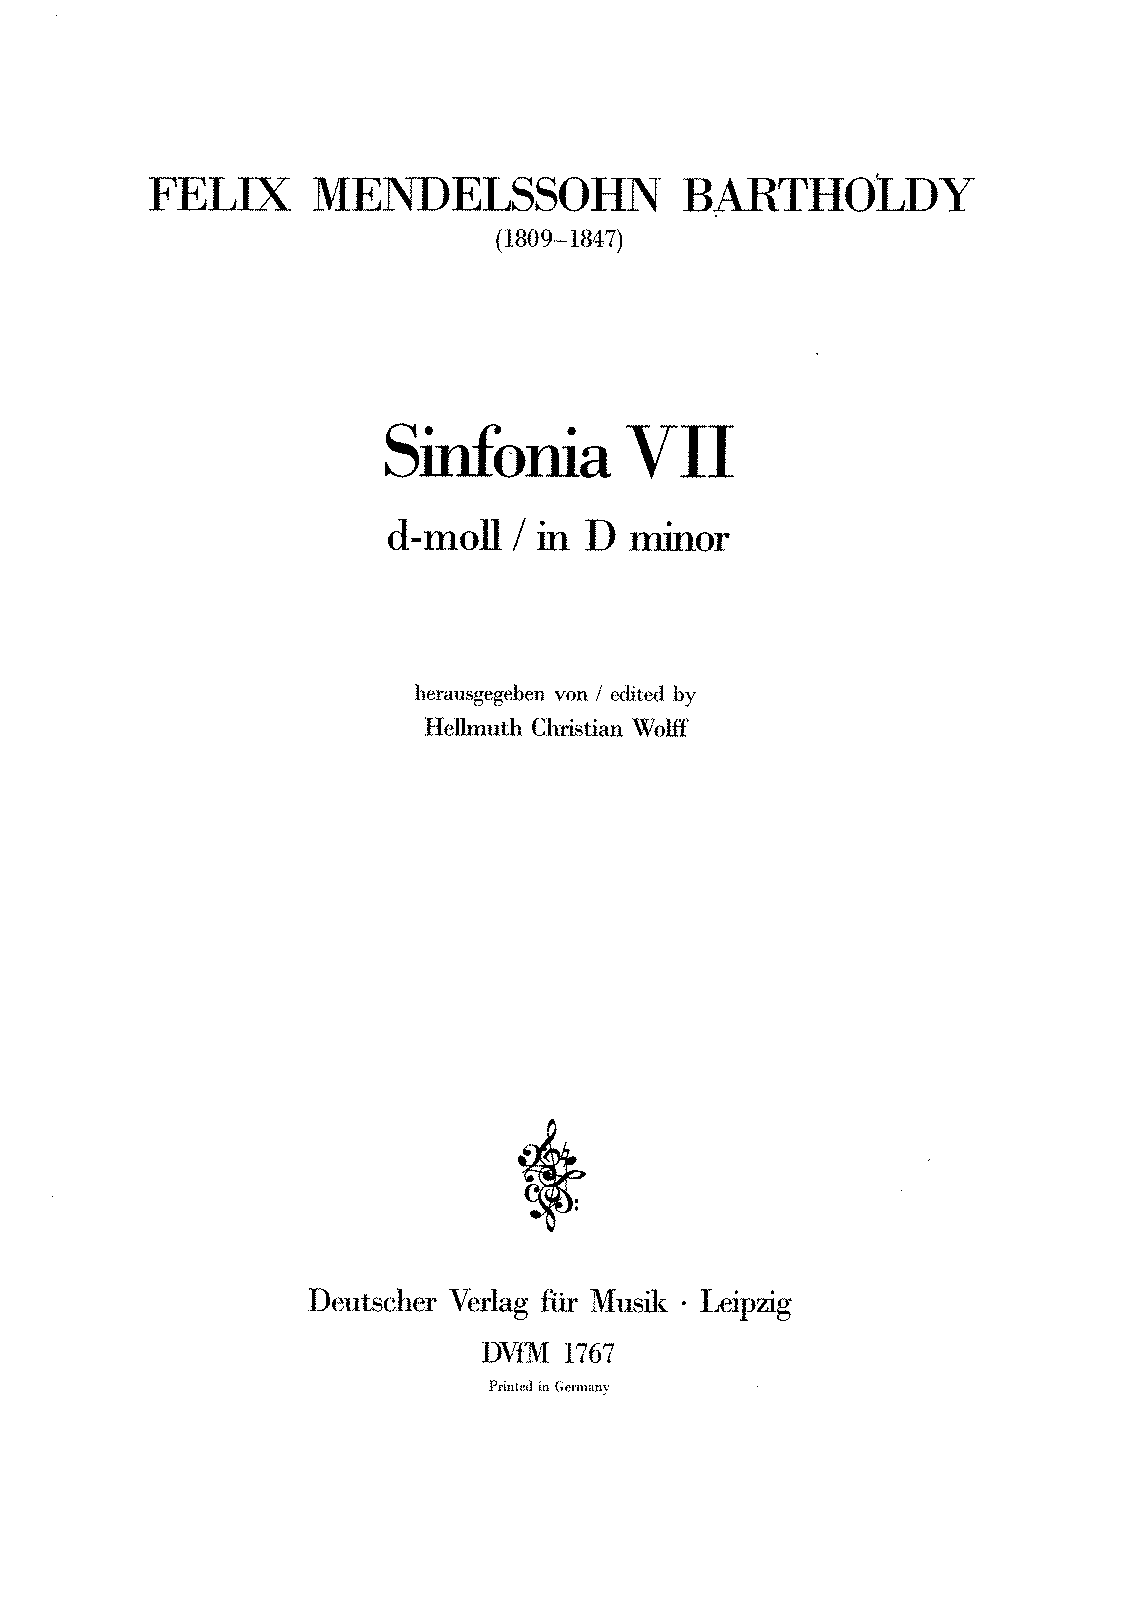 PMLP207412-Mendelssohn, Felix - Sinfonia for String no. 07 in D minor MWV N 7.pdf